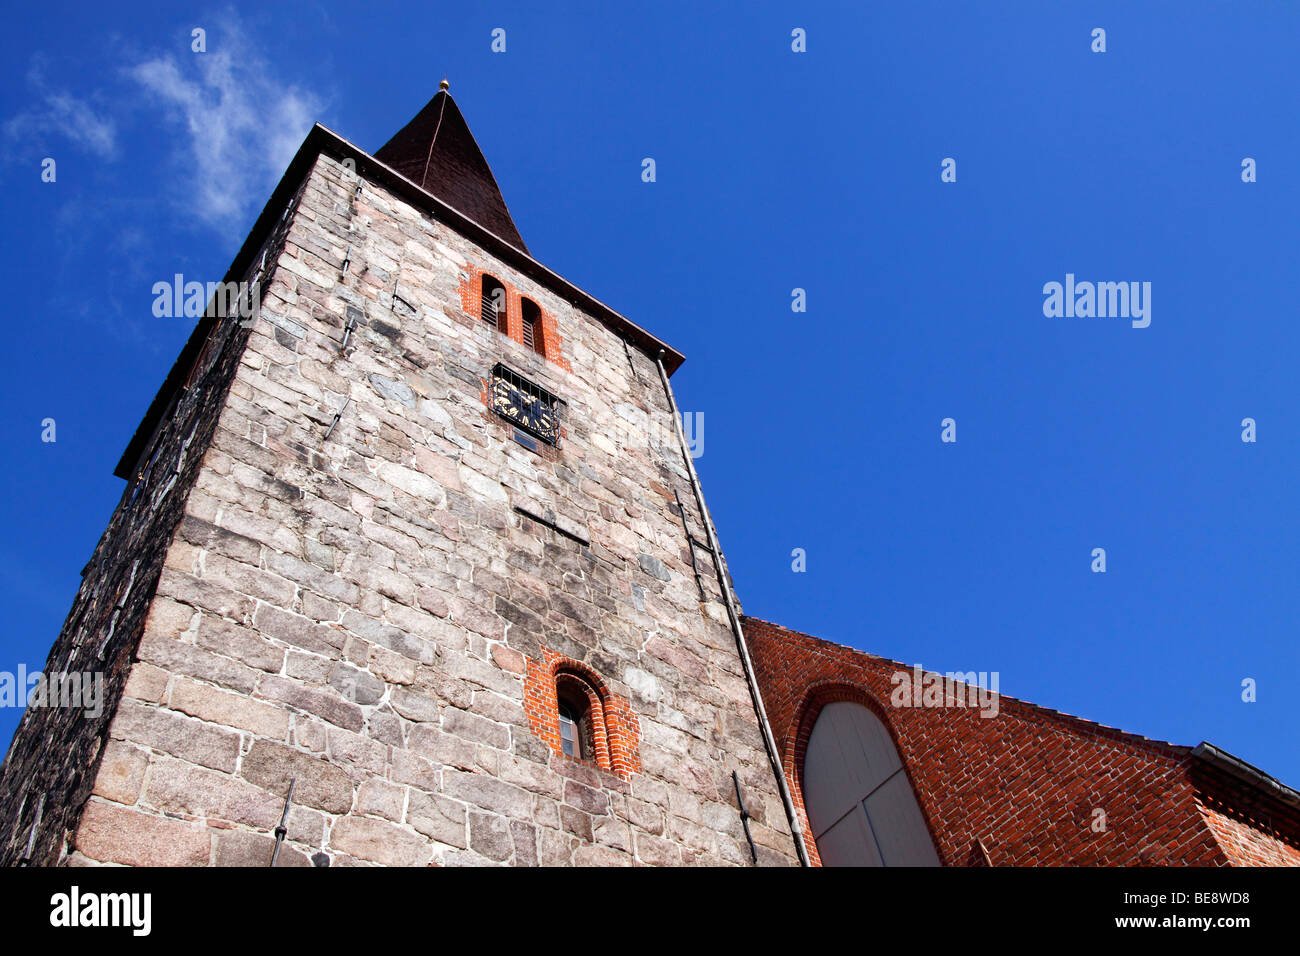 Spire of the gothic St. Johanniskirche church in Petersdorf, Fehmarn island, Ostholstein district, Schleswig-Holstein, - Stock Image